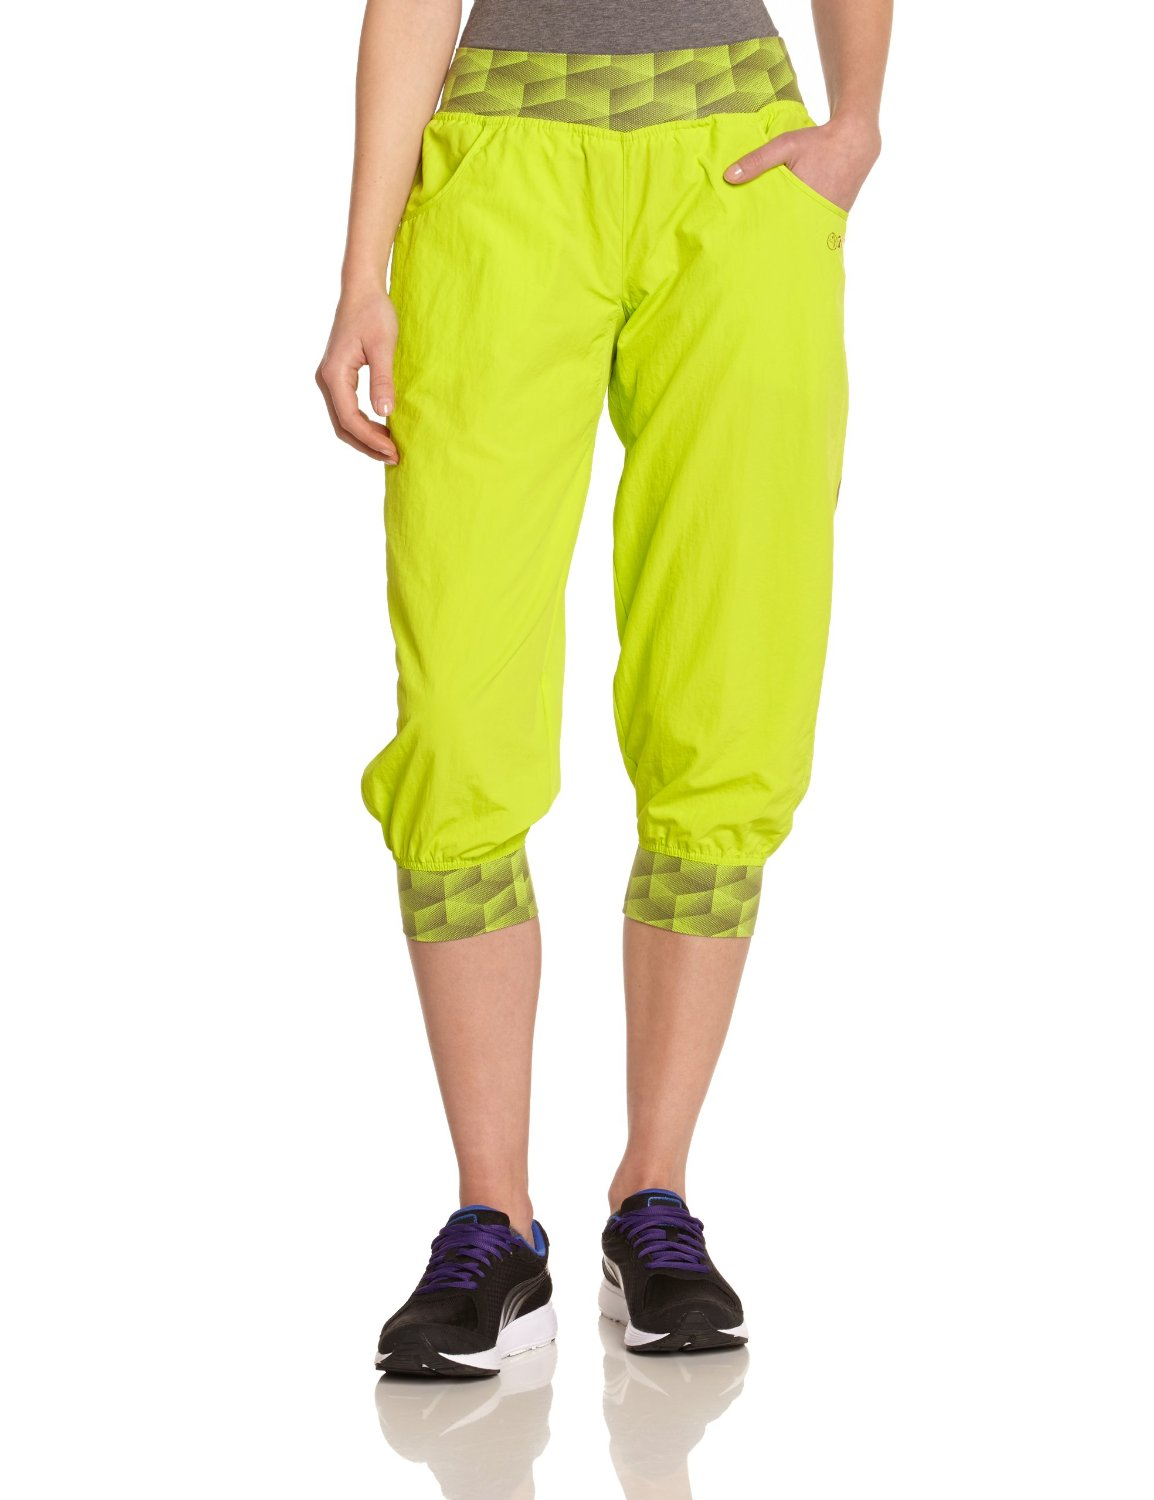 Awesome Tron Cargo Pants